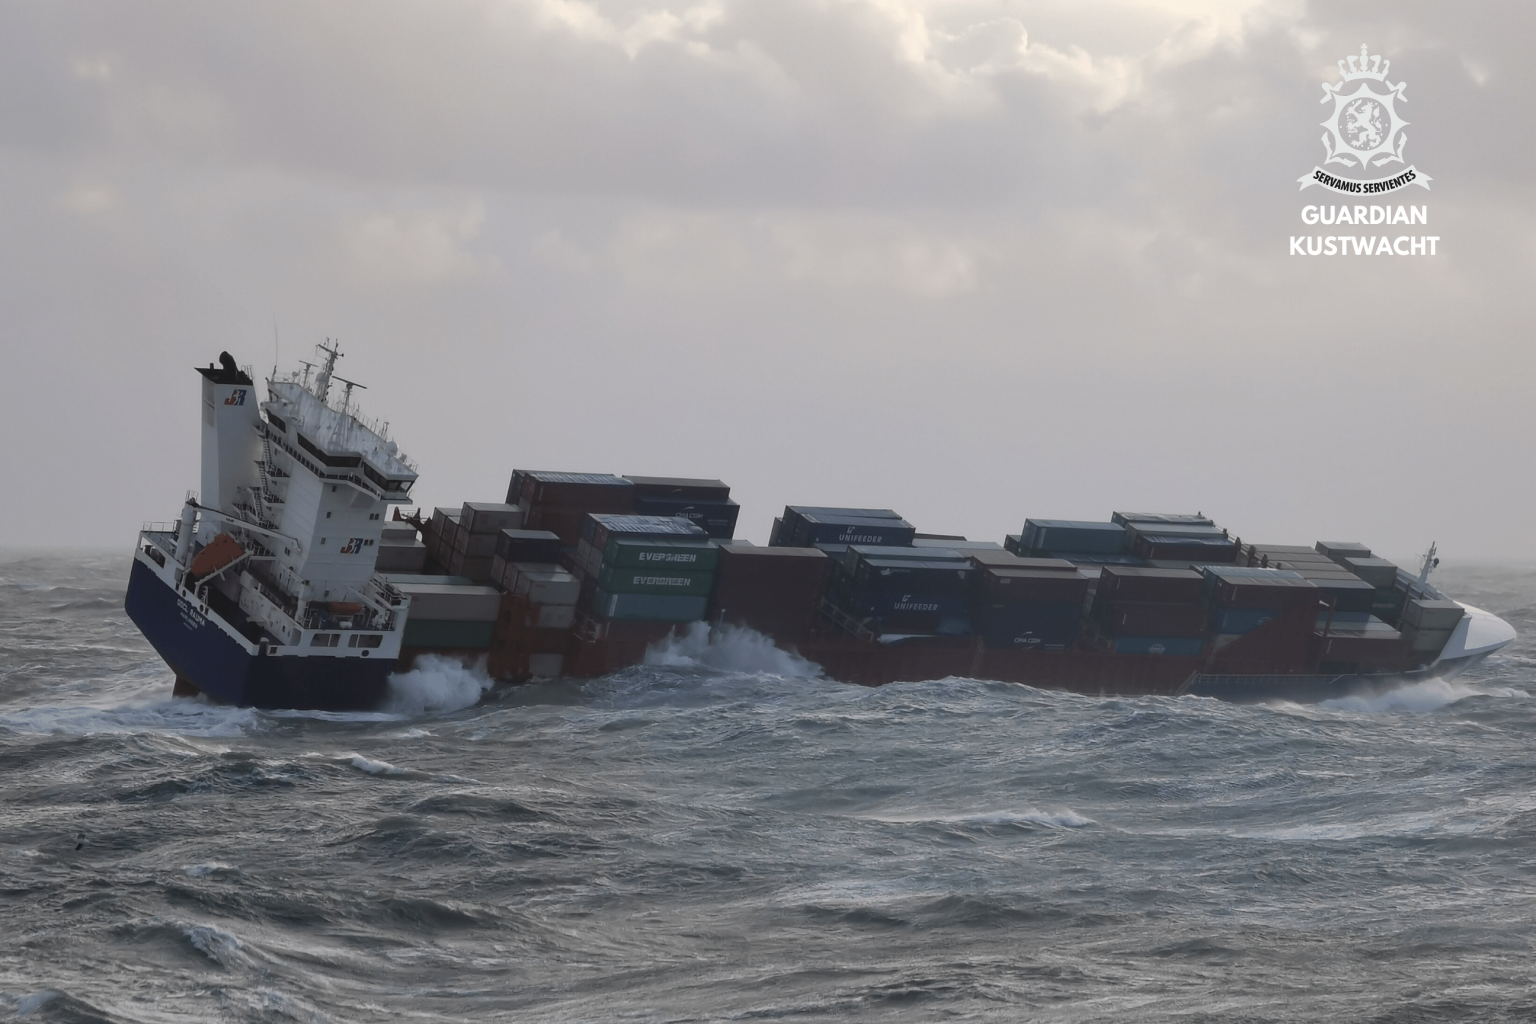 Investigation into container vessel OOCL Rauma losing containers